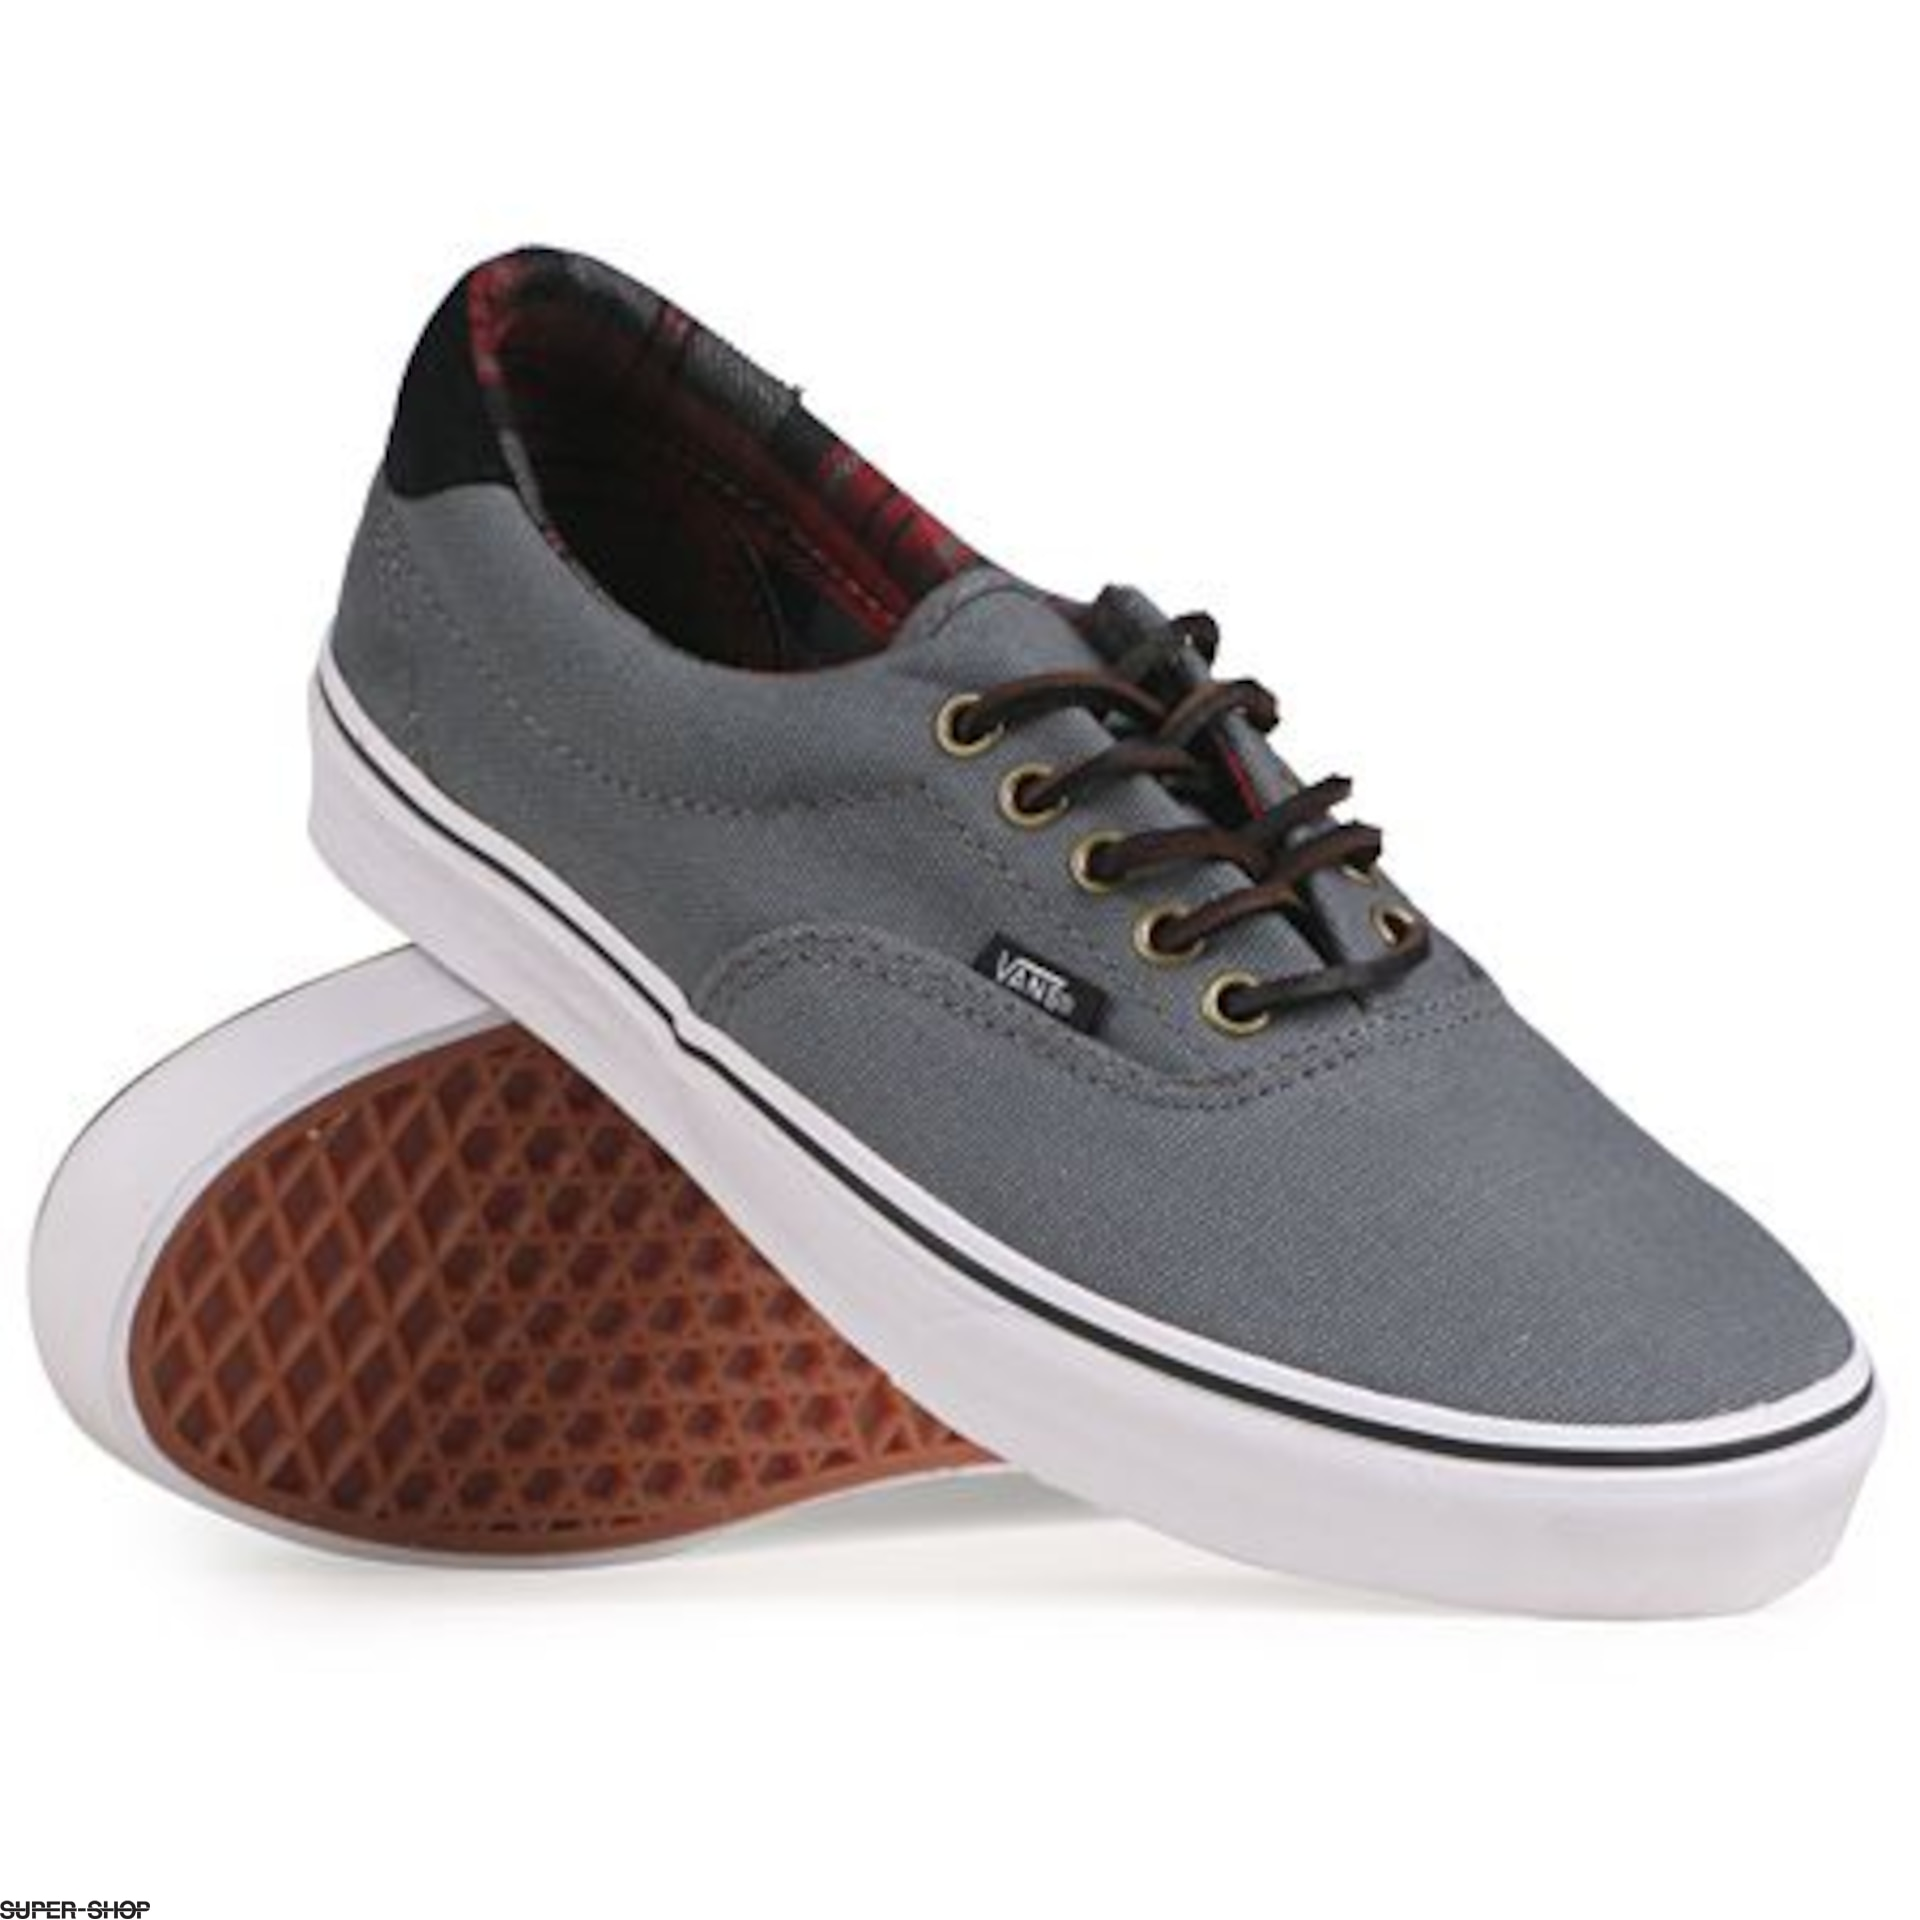 Vans Shoes Era 59 (castlerock) aee58fedb4